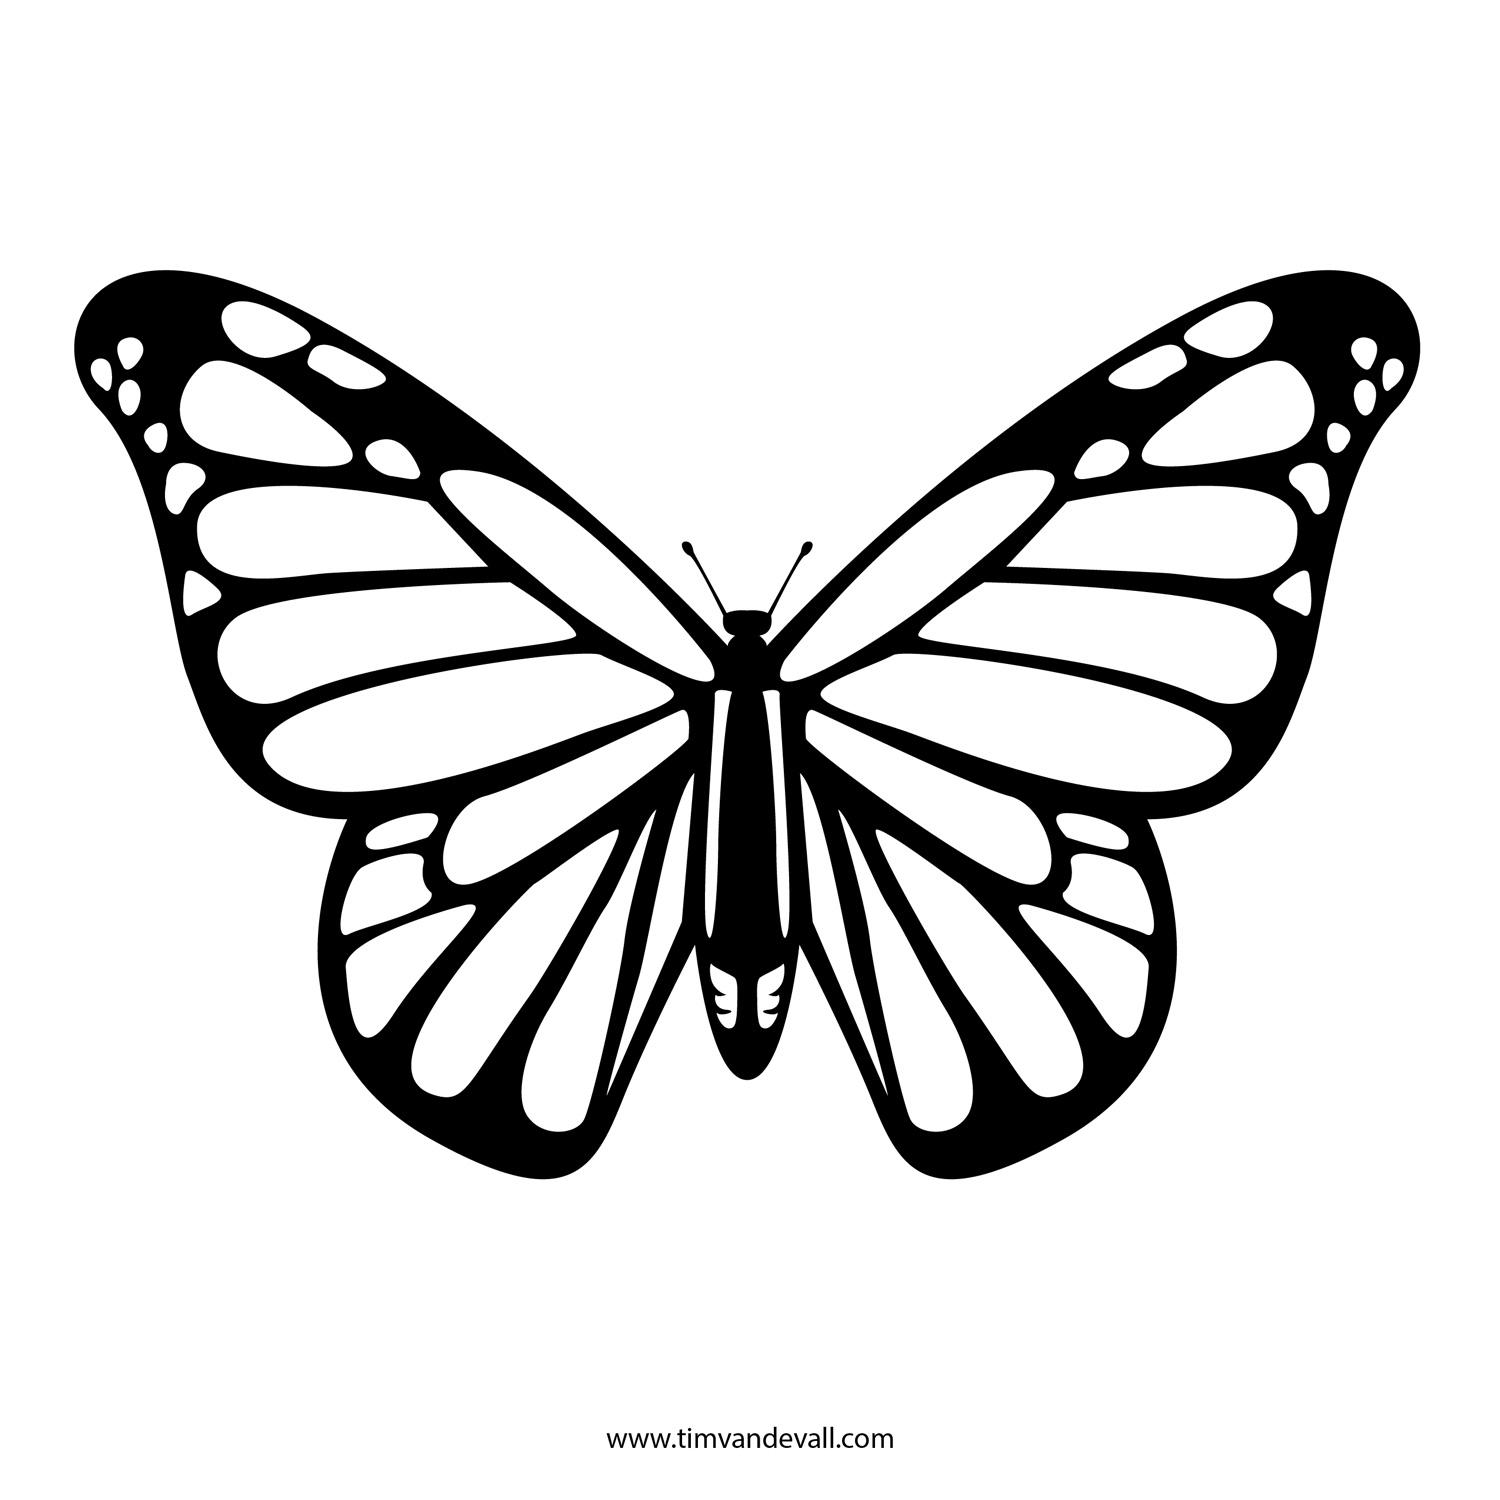 small butterfly coloring pages butterfly coloring pages pages small butterfly coloring